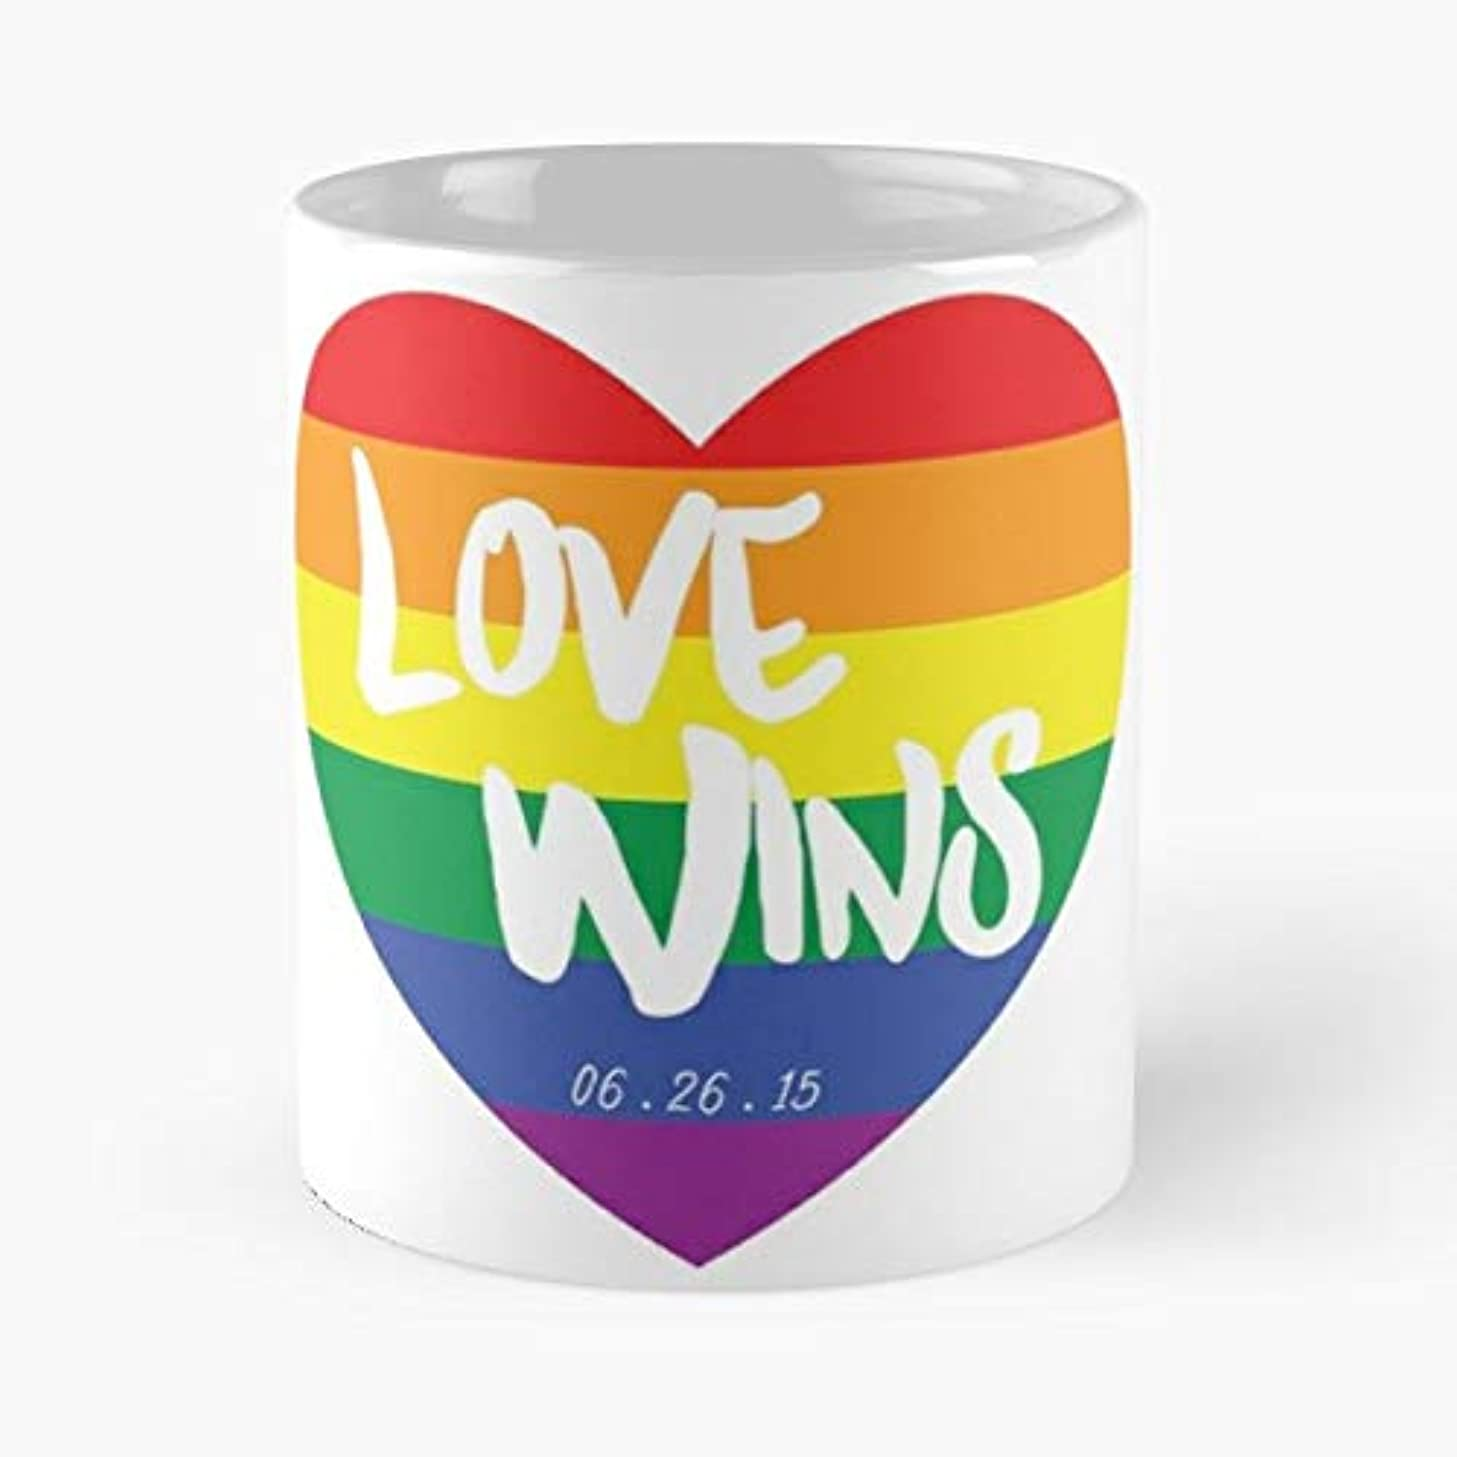 Love Wins Marriage Equality Gay Same Sex - 11 Oz Coffee Mugs Unique Ceramic Novelty Cup, The Best Gift For Holidays.